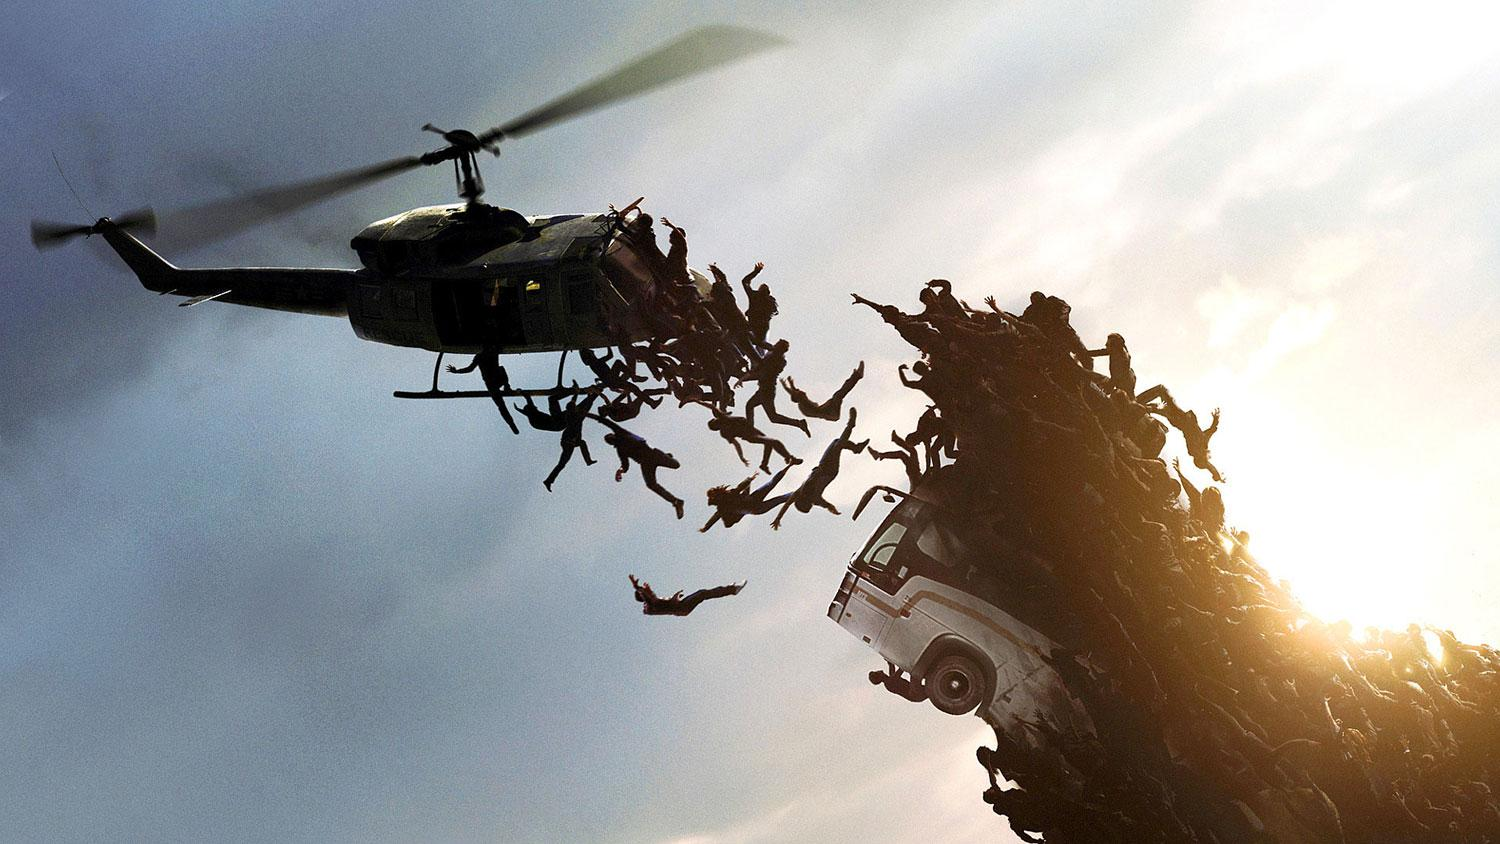 World War Z Movie Clip Helicopter Attack Wicked New Clip from World War Z Arrives